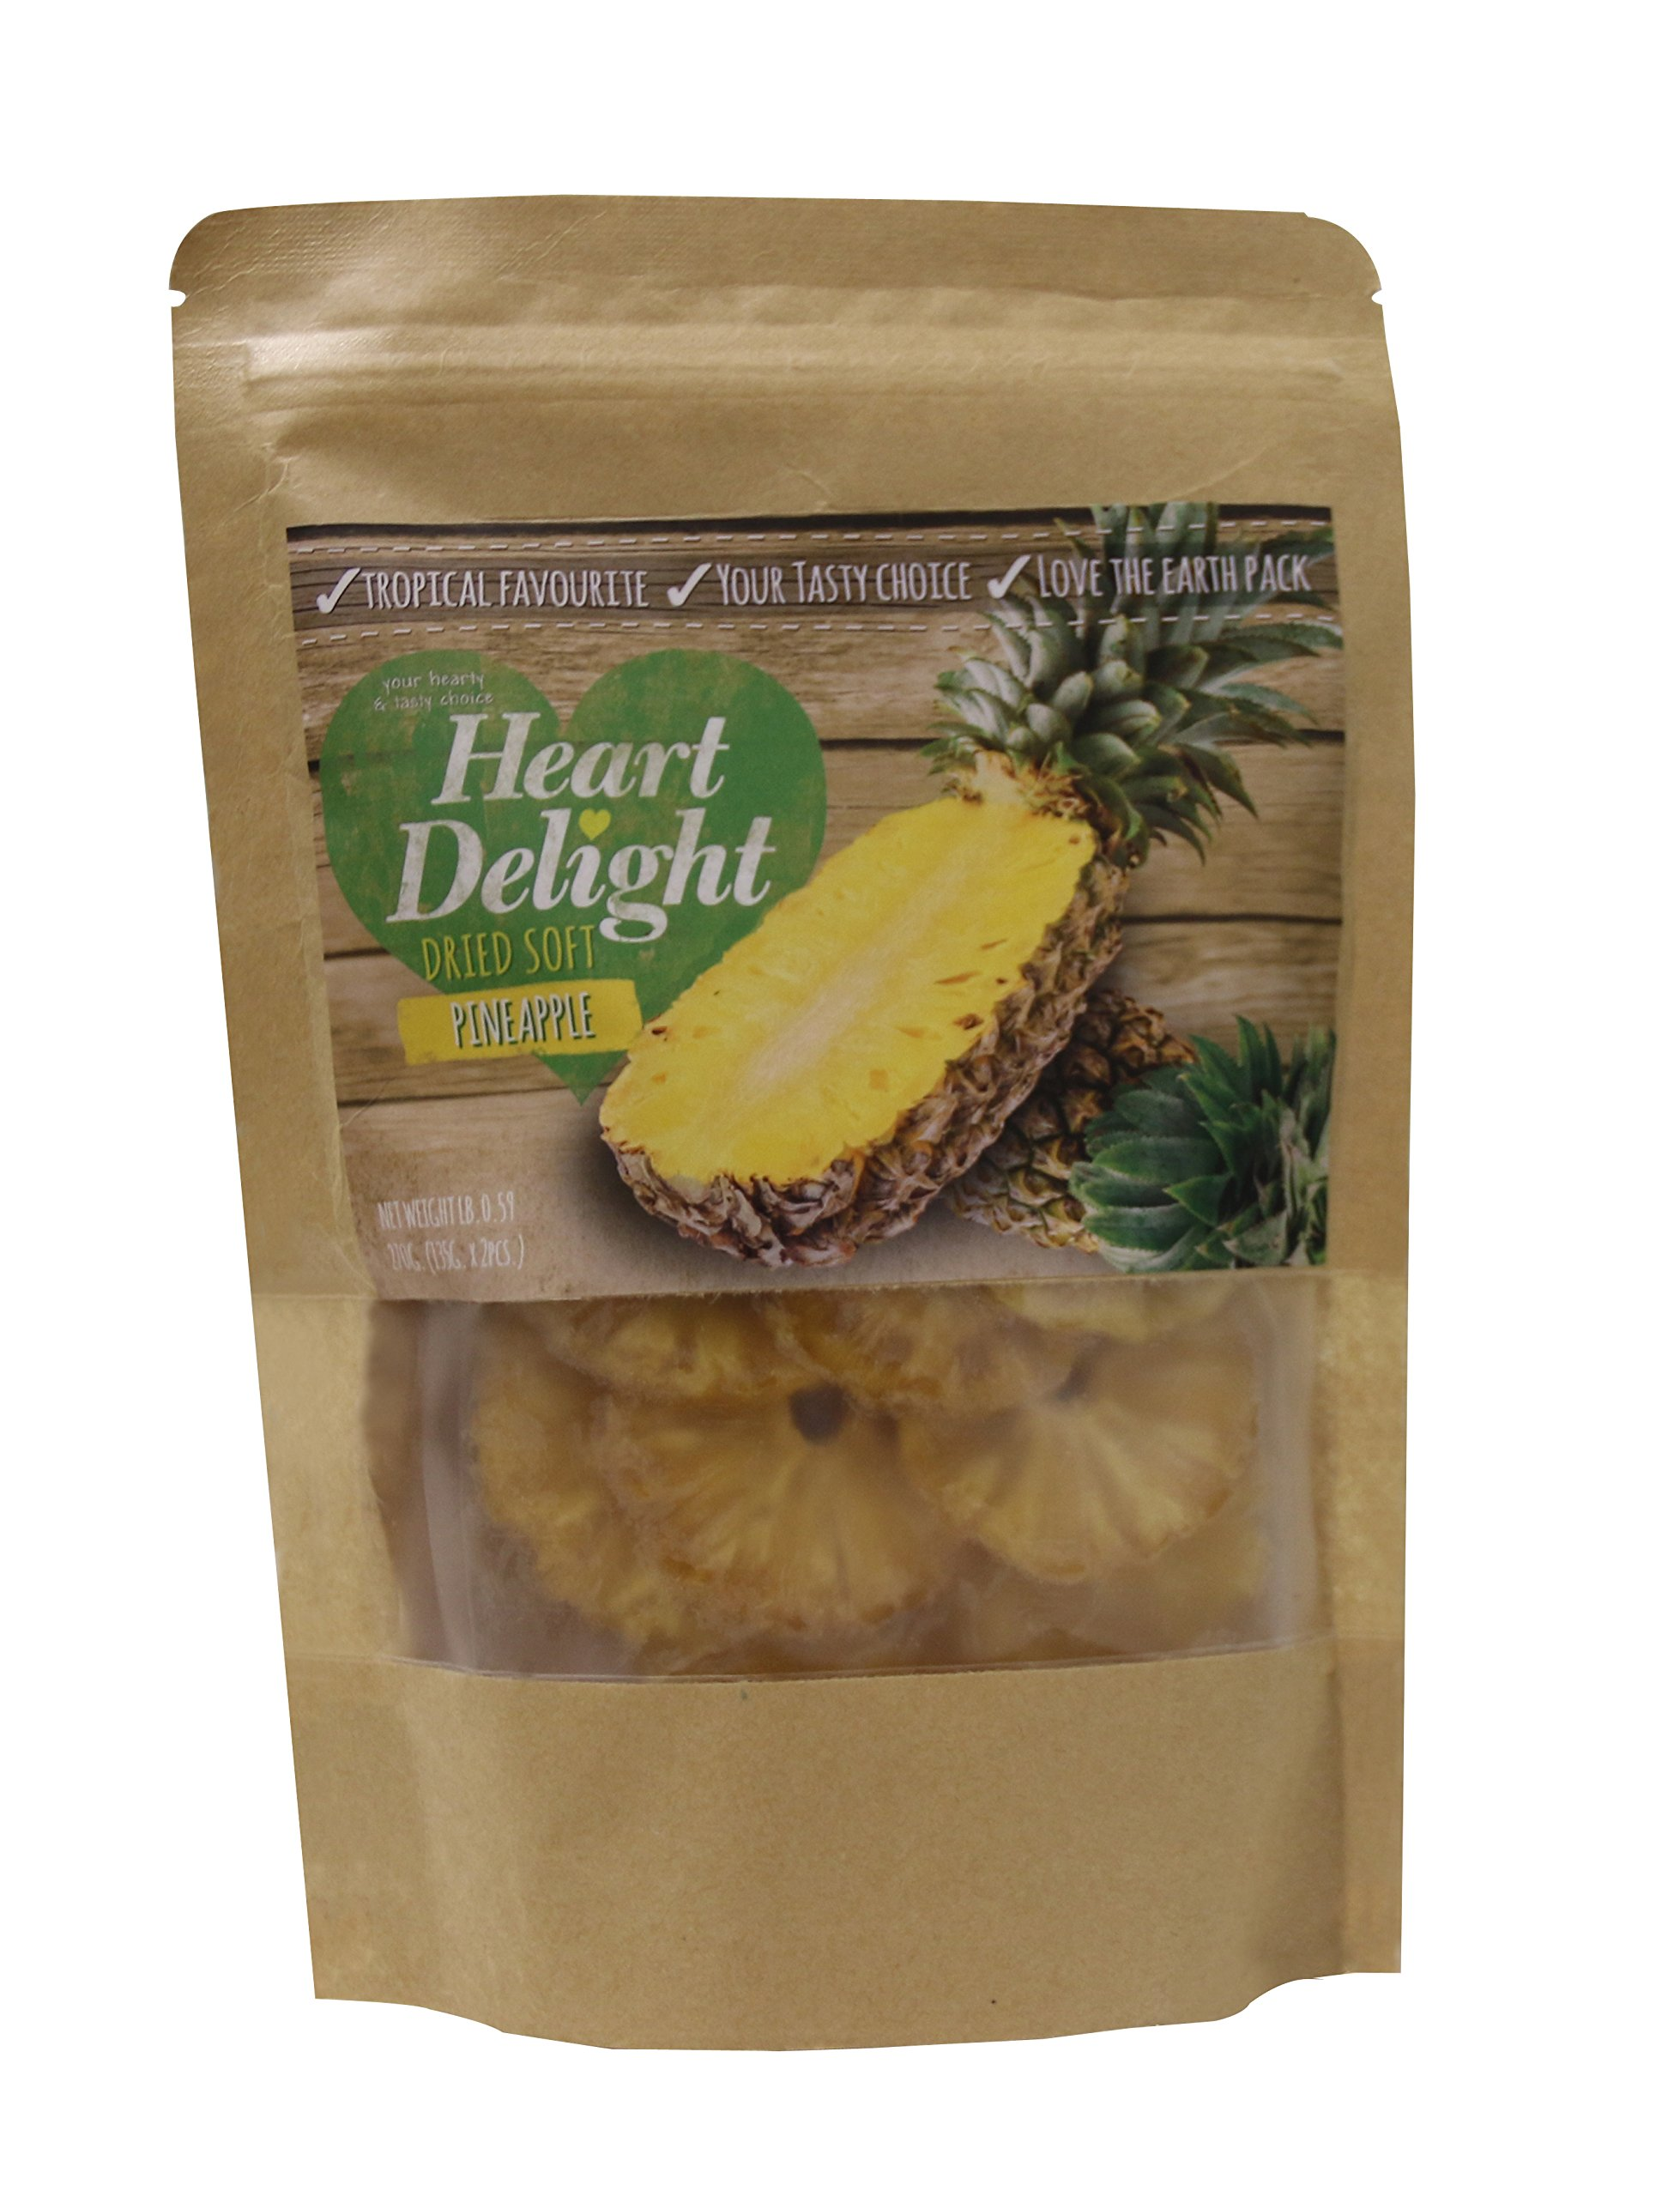 Heart Delight Dried Soft Tasty Tropical Pineapple Rings 270 gr. - 9.52 oz.